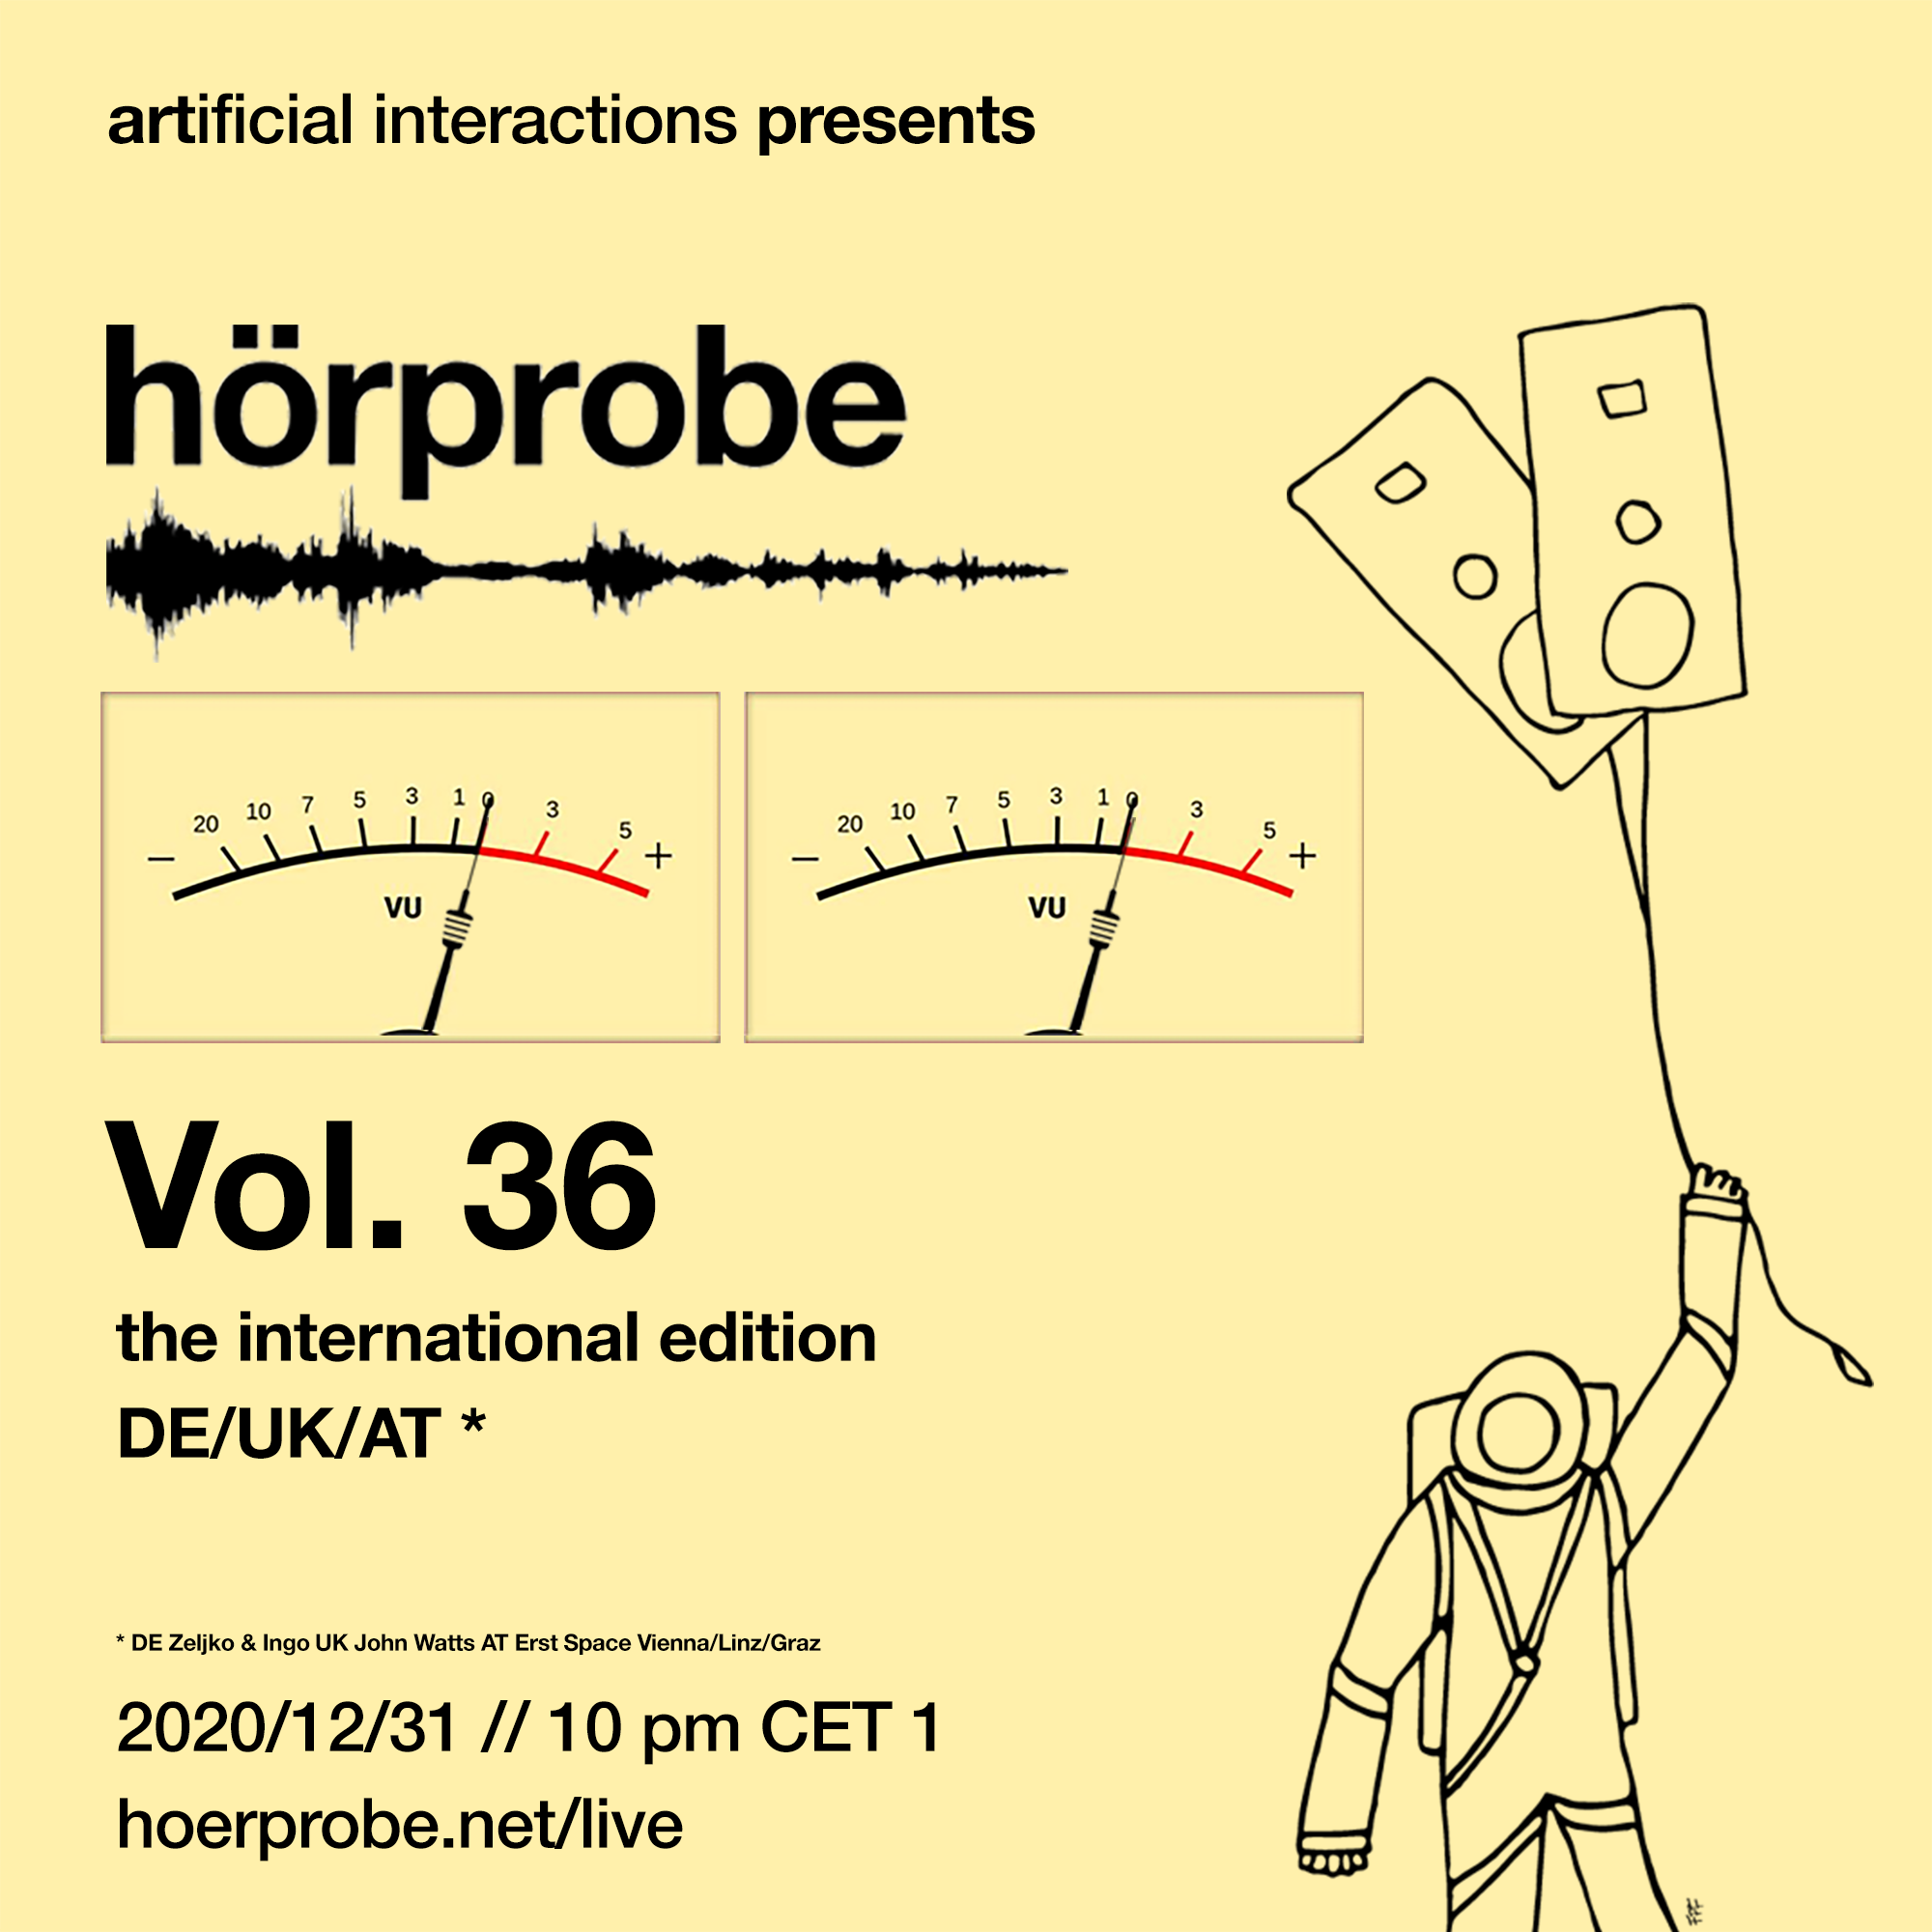 hörprobe Vol. 36 - the official home of hörprobe flyer